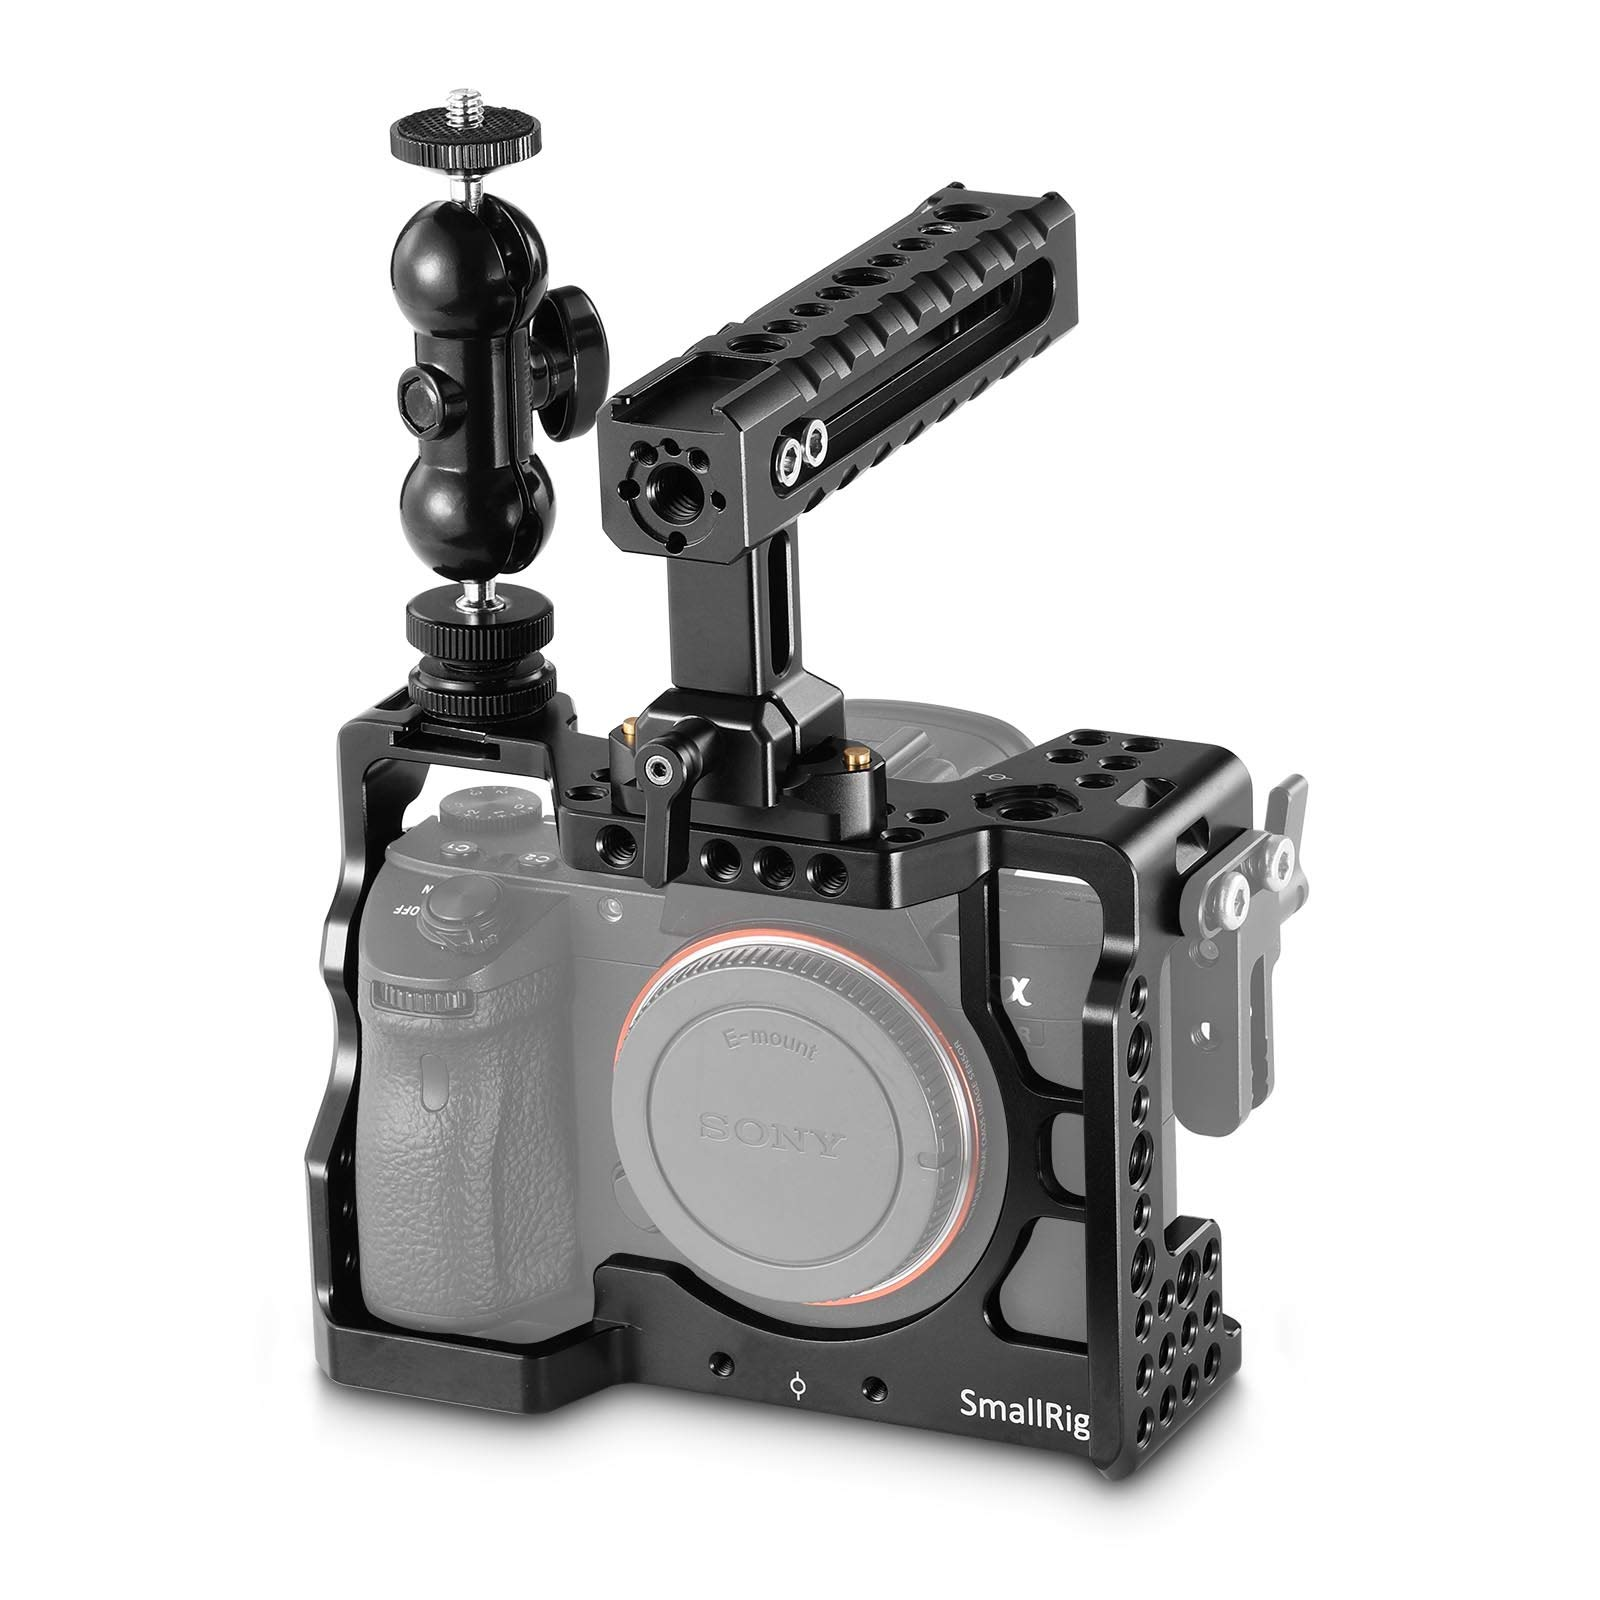 SMALLRIG A7RIII Cage Kit Rig for Sony A7RIII/A7III Camera with Top Handle, Ball Head - 2103 by SmallRig